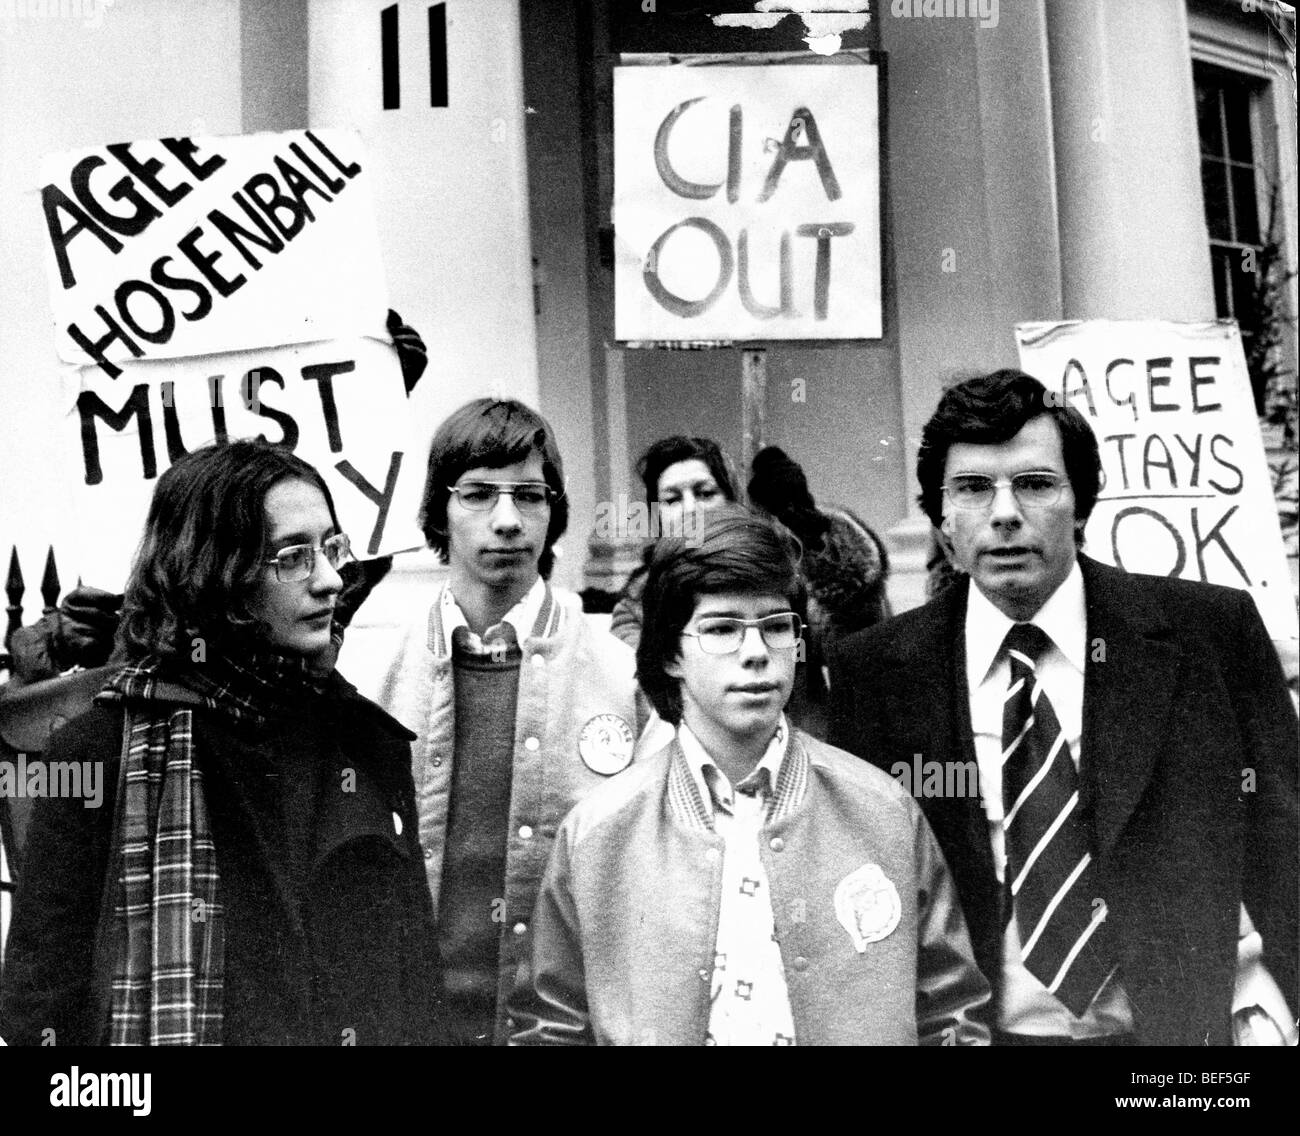 CIA whistleblower PHILIP AGEE, right, during a 1977 London protest against his deportment. Stock Photo